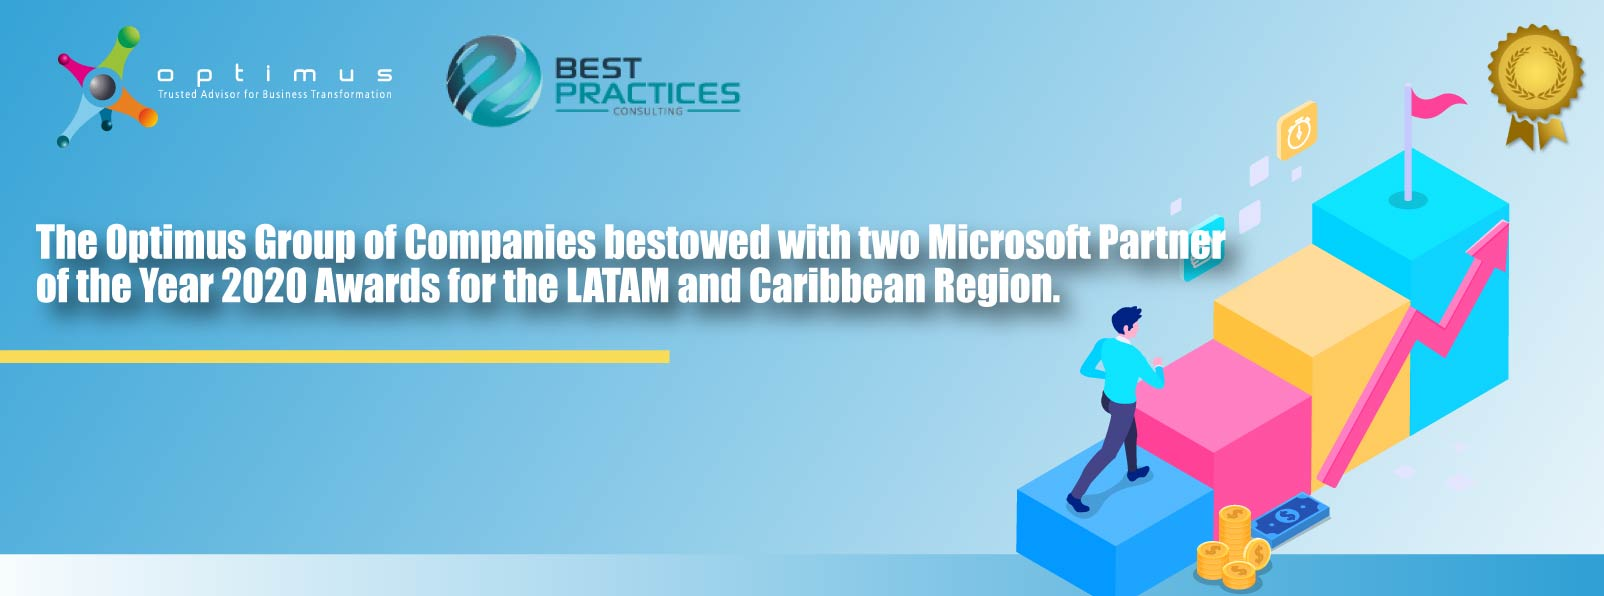 The Optimus Group Of Companies Bestowed With Two Microsoft Partner Of The Year 2020 Awards For The LATAM And Caribbean Region.